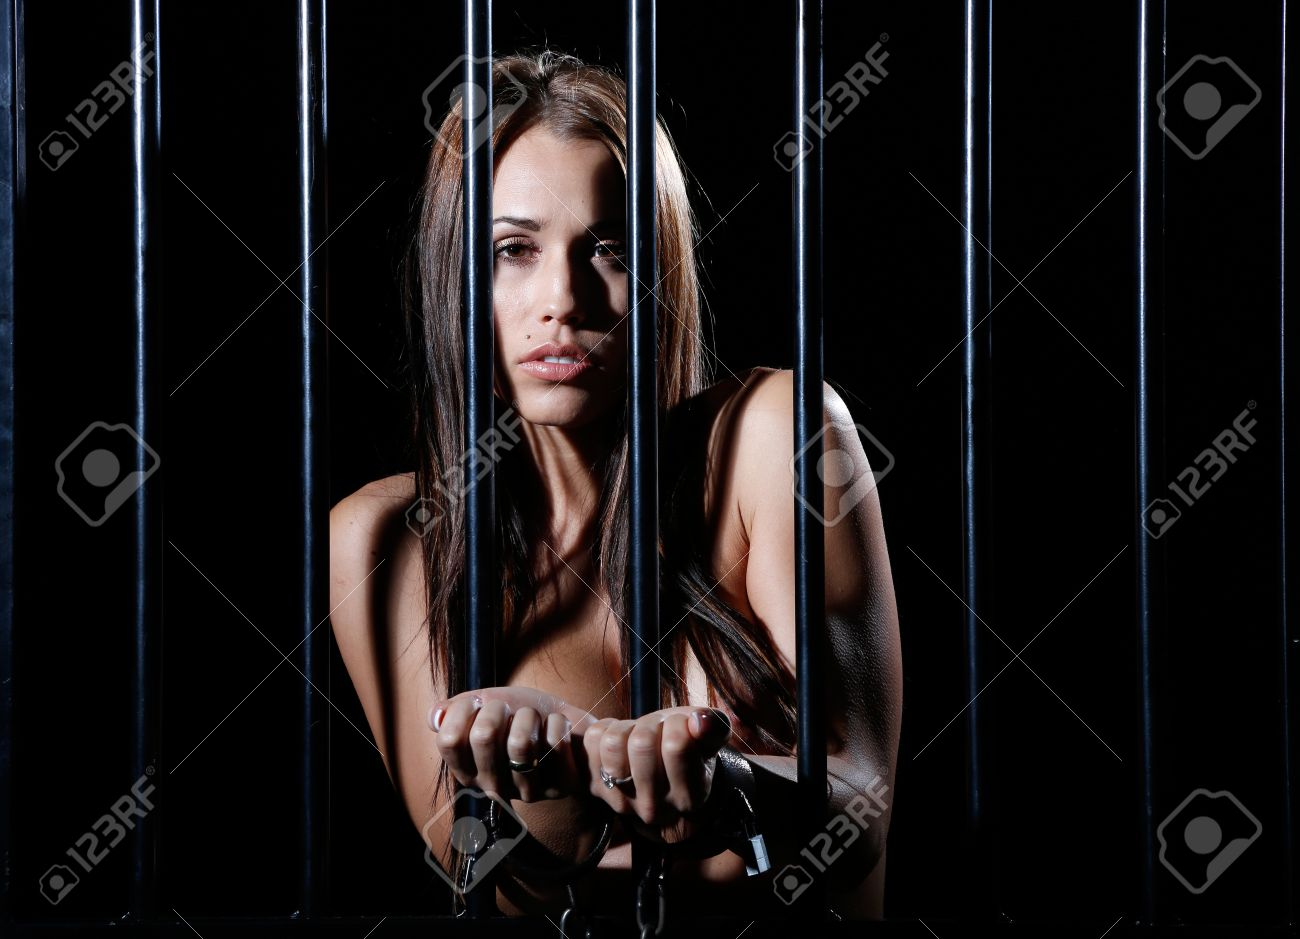 very sexy and beautiful nude woman locked behind black prison